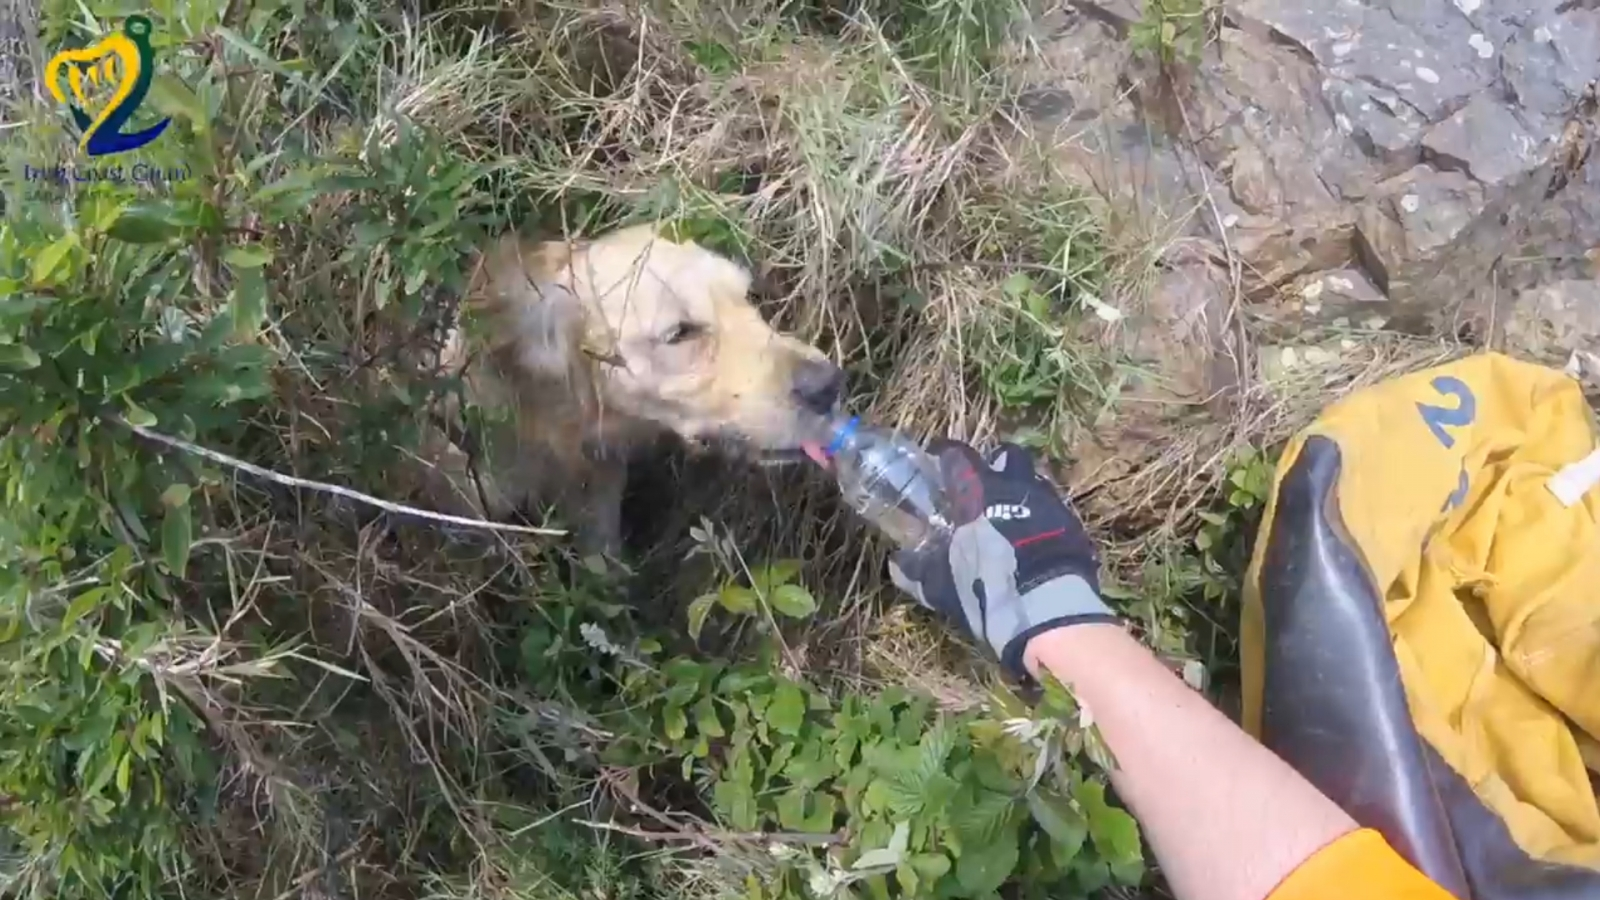 watch-the-moment-a-stranded-dog-is-rescued-after-falling-down-a-15ft-cliff